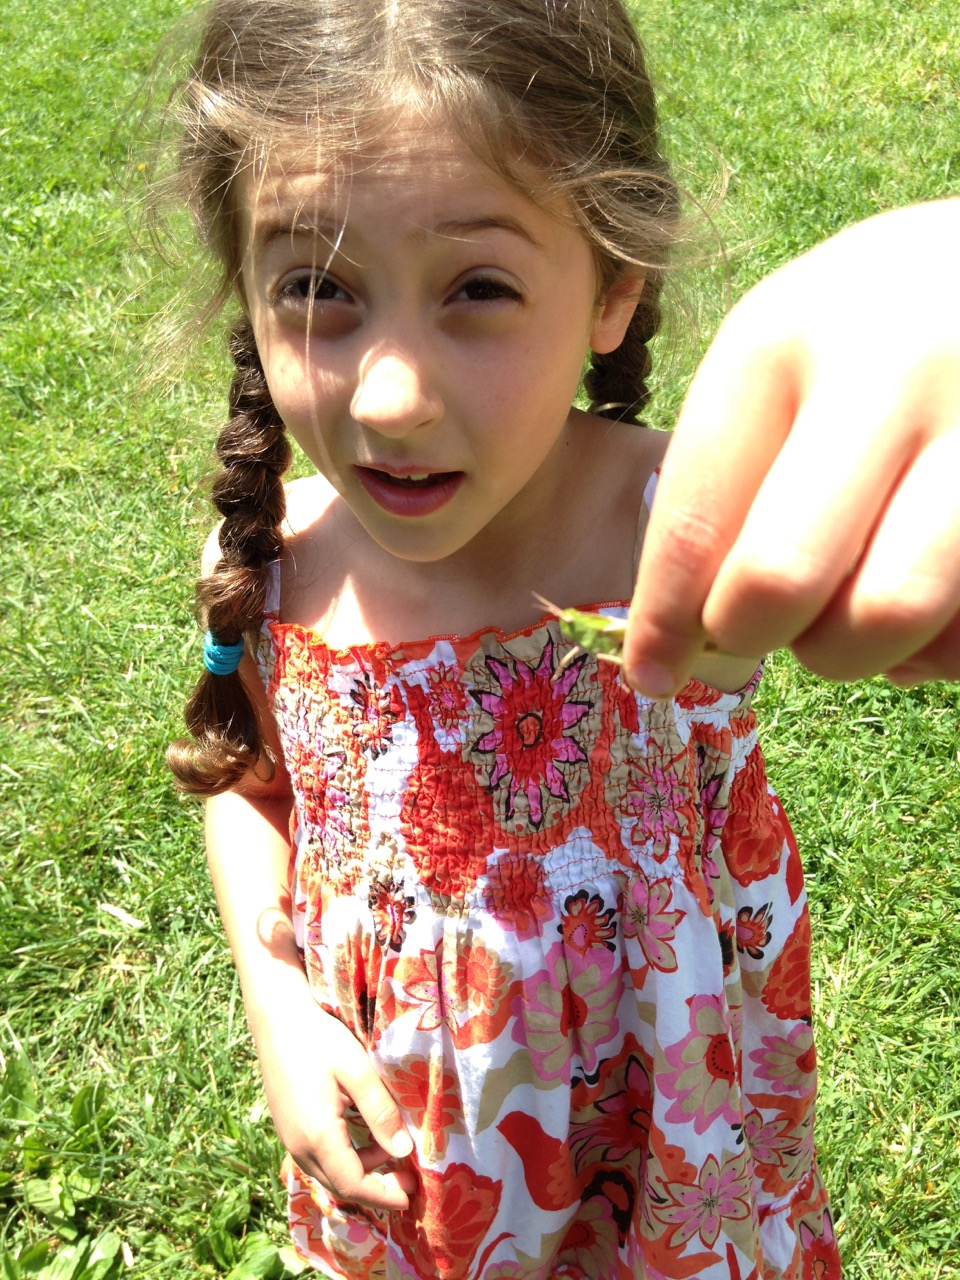 Sophie caught a grasshopper. We put him in a jar and watched him for a bit.